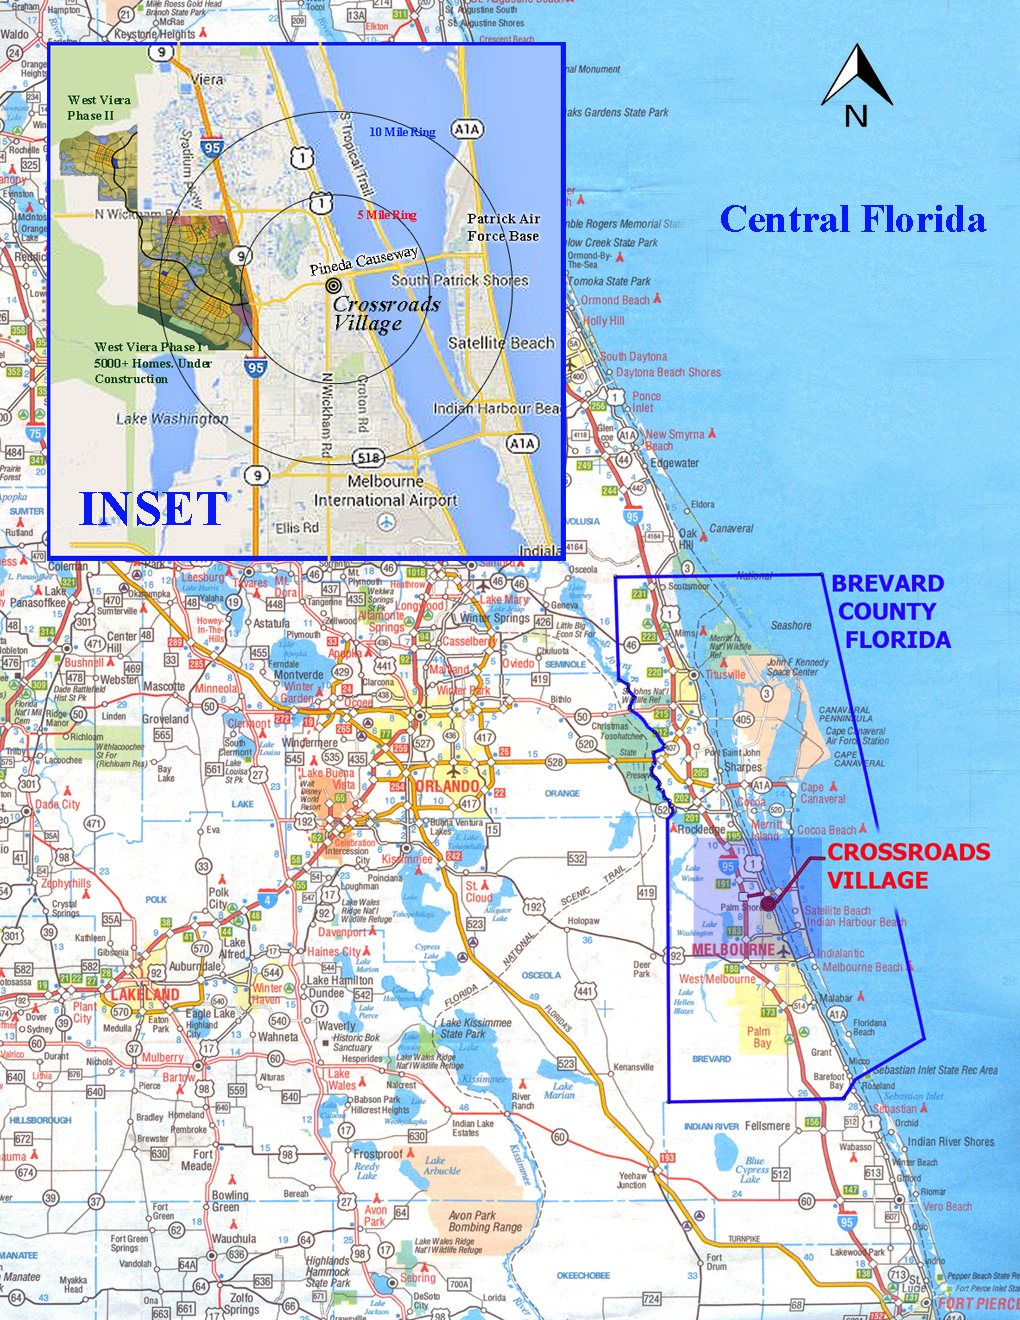 Frost Proof Florida Map.Central Florida Map With Inset